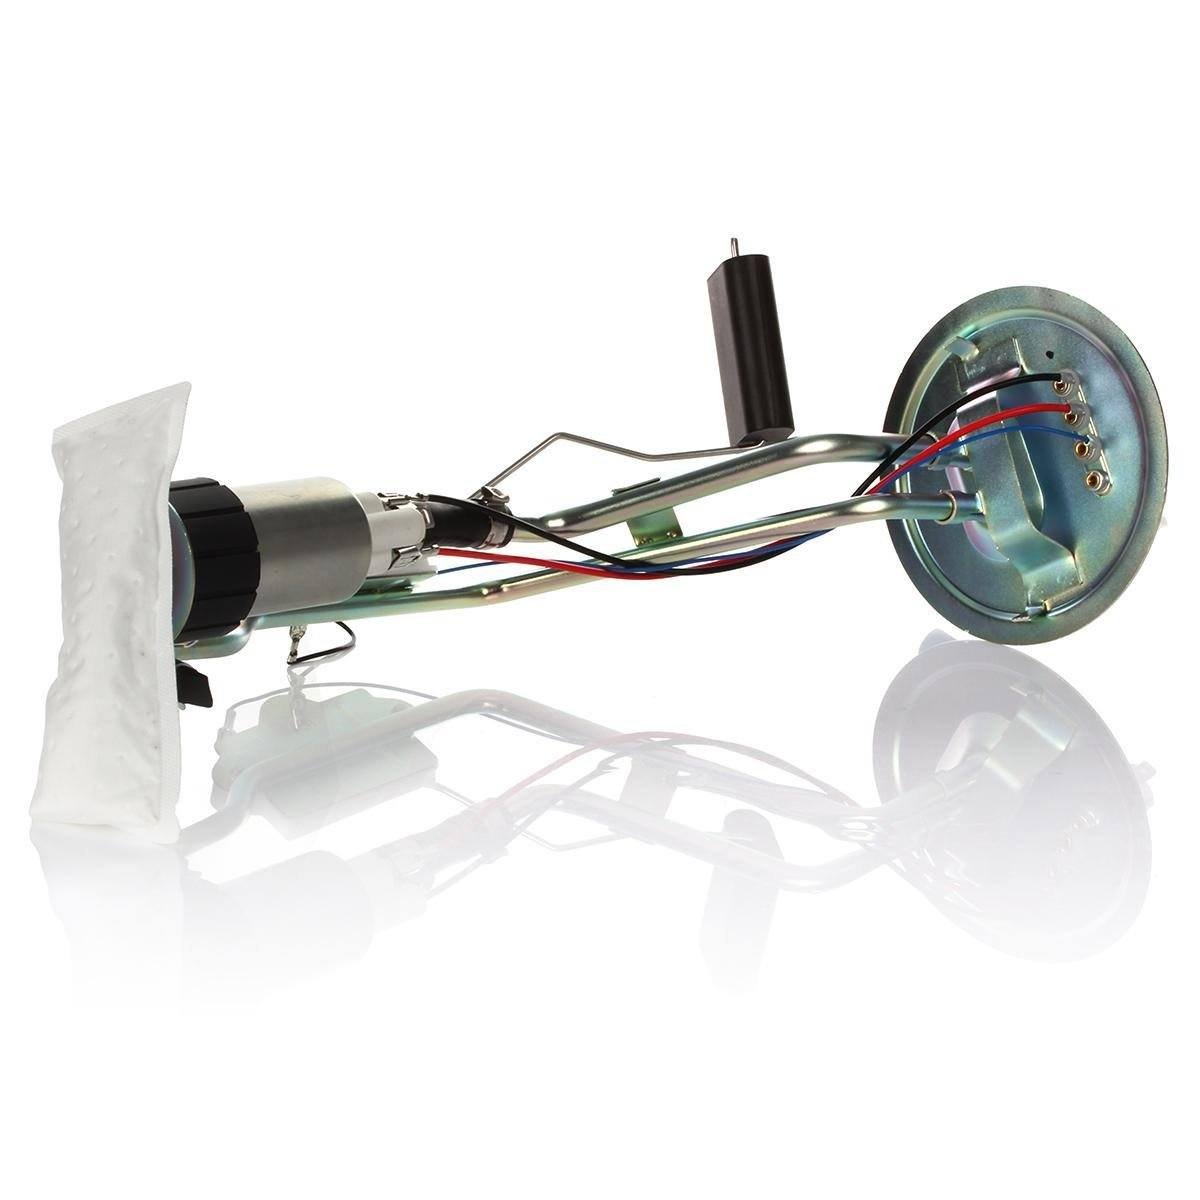 Amazon.com: PartsSquare New Fuel Pump W/Sender E2078S For Ford Ranger Mazda B2300 B3000 B4000 Standard: Automotive